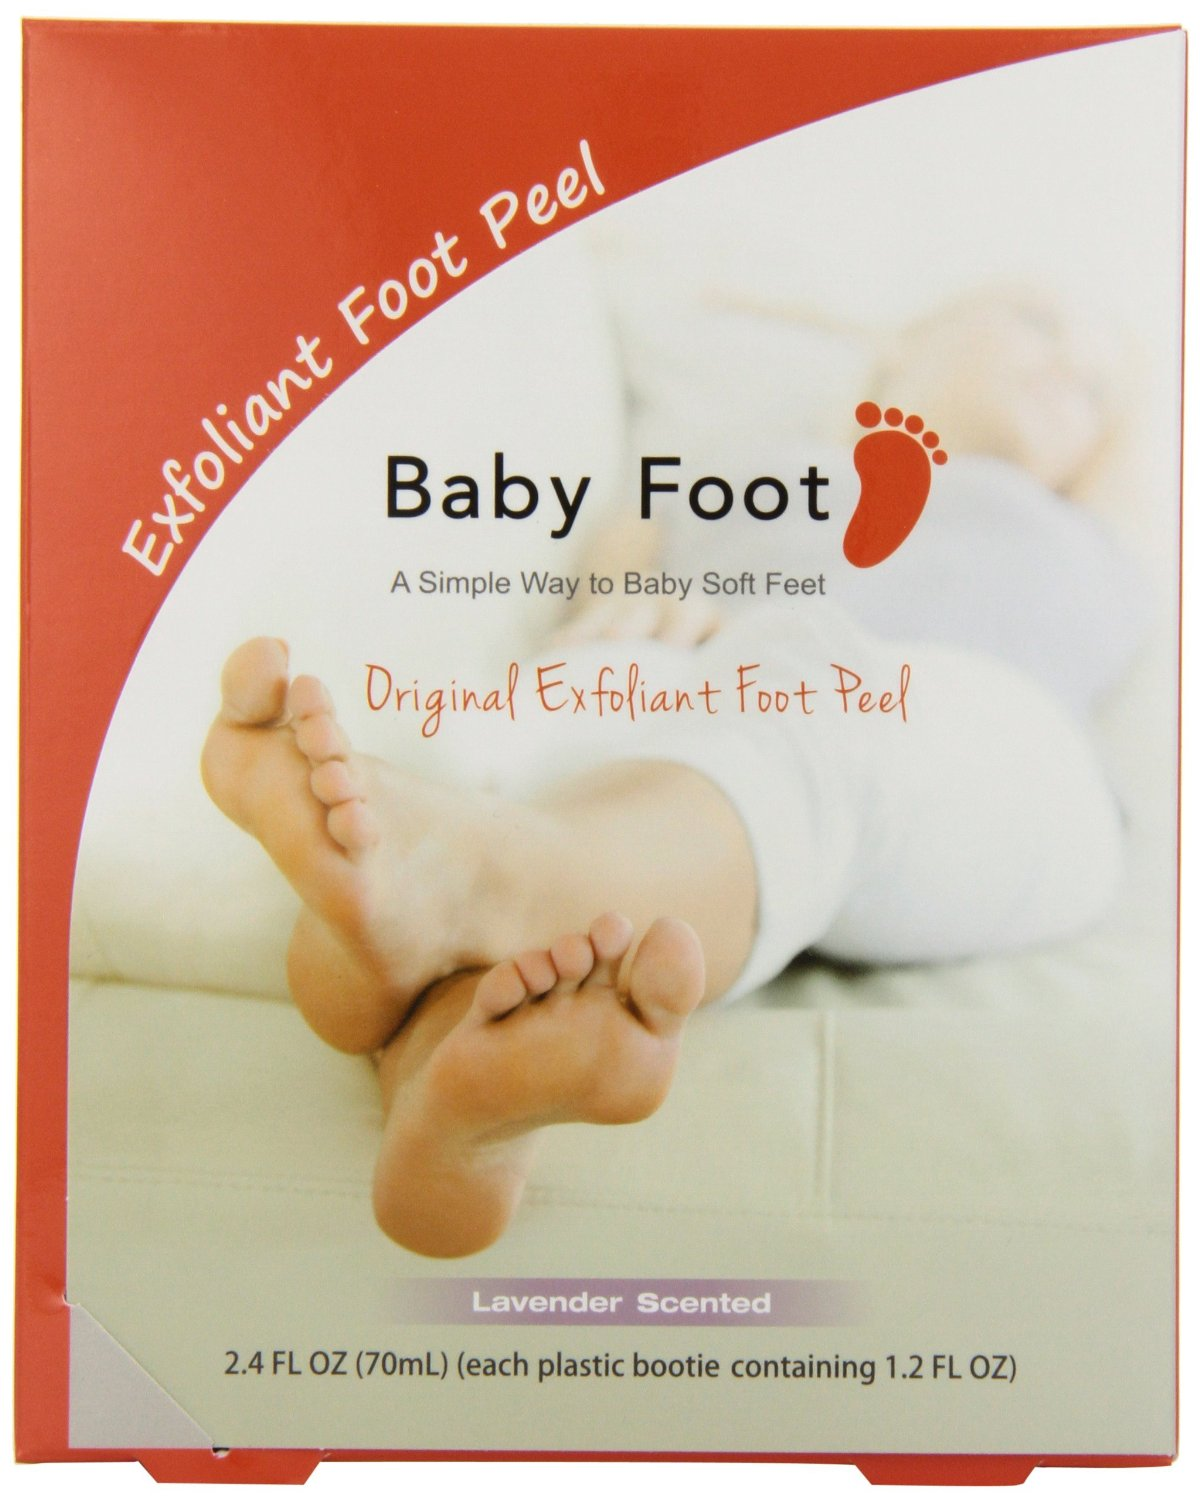 BabyFoot™ 1-Hour Treatment Original Exfoliant Foot Peel in Lavender